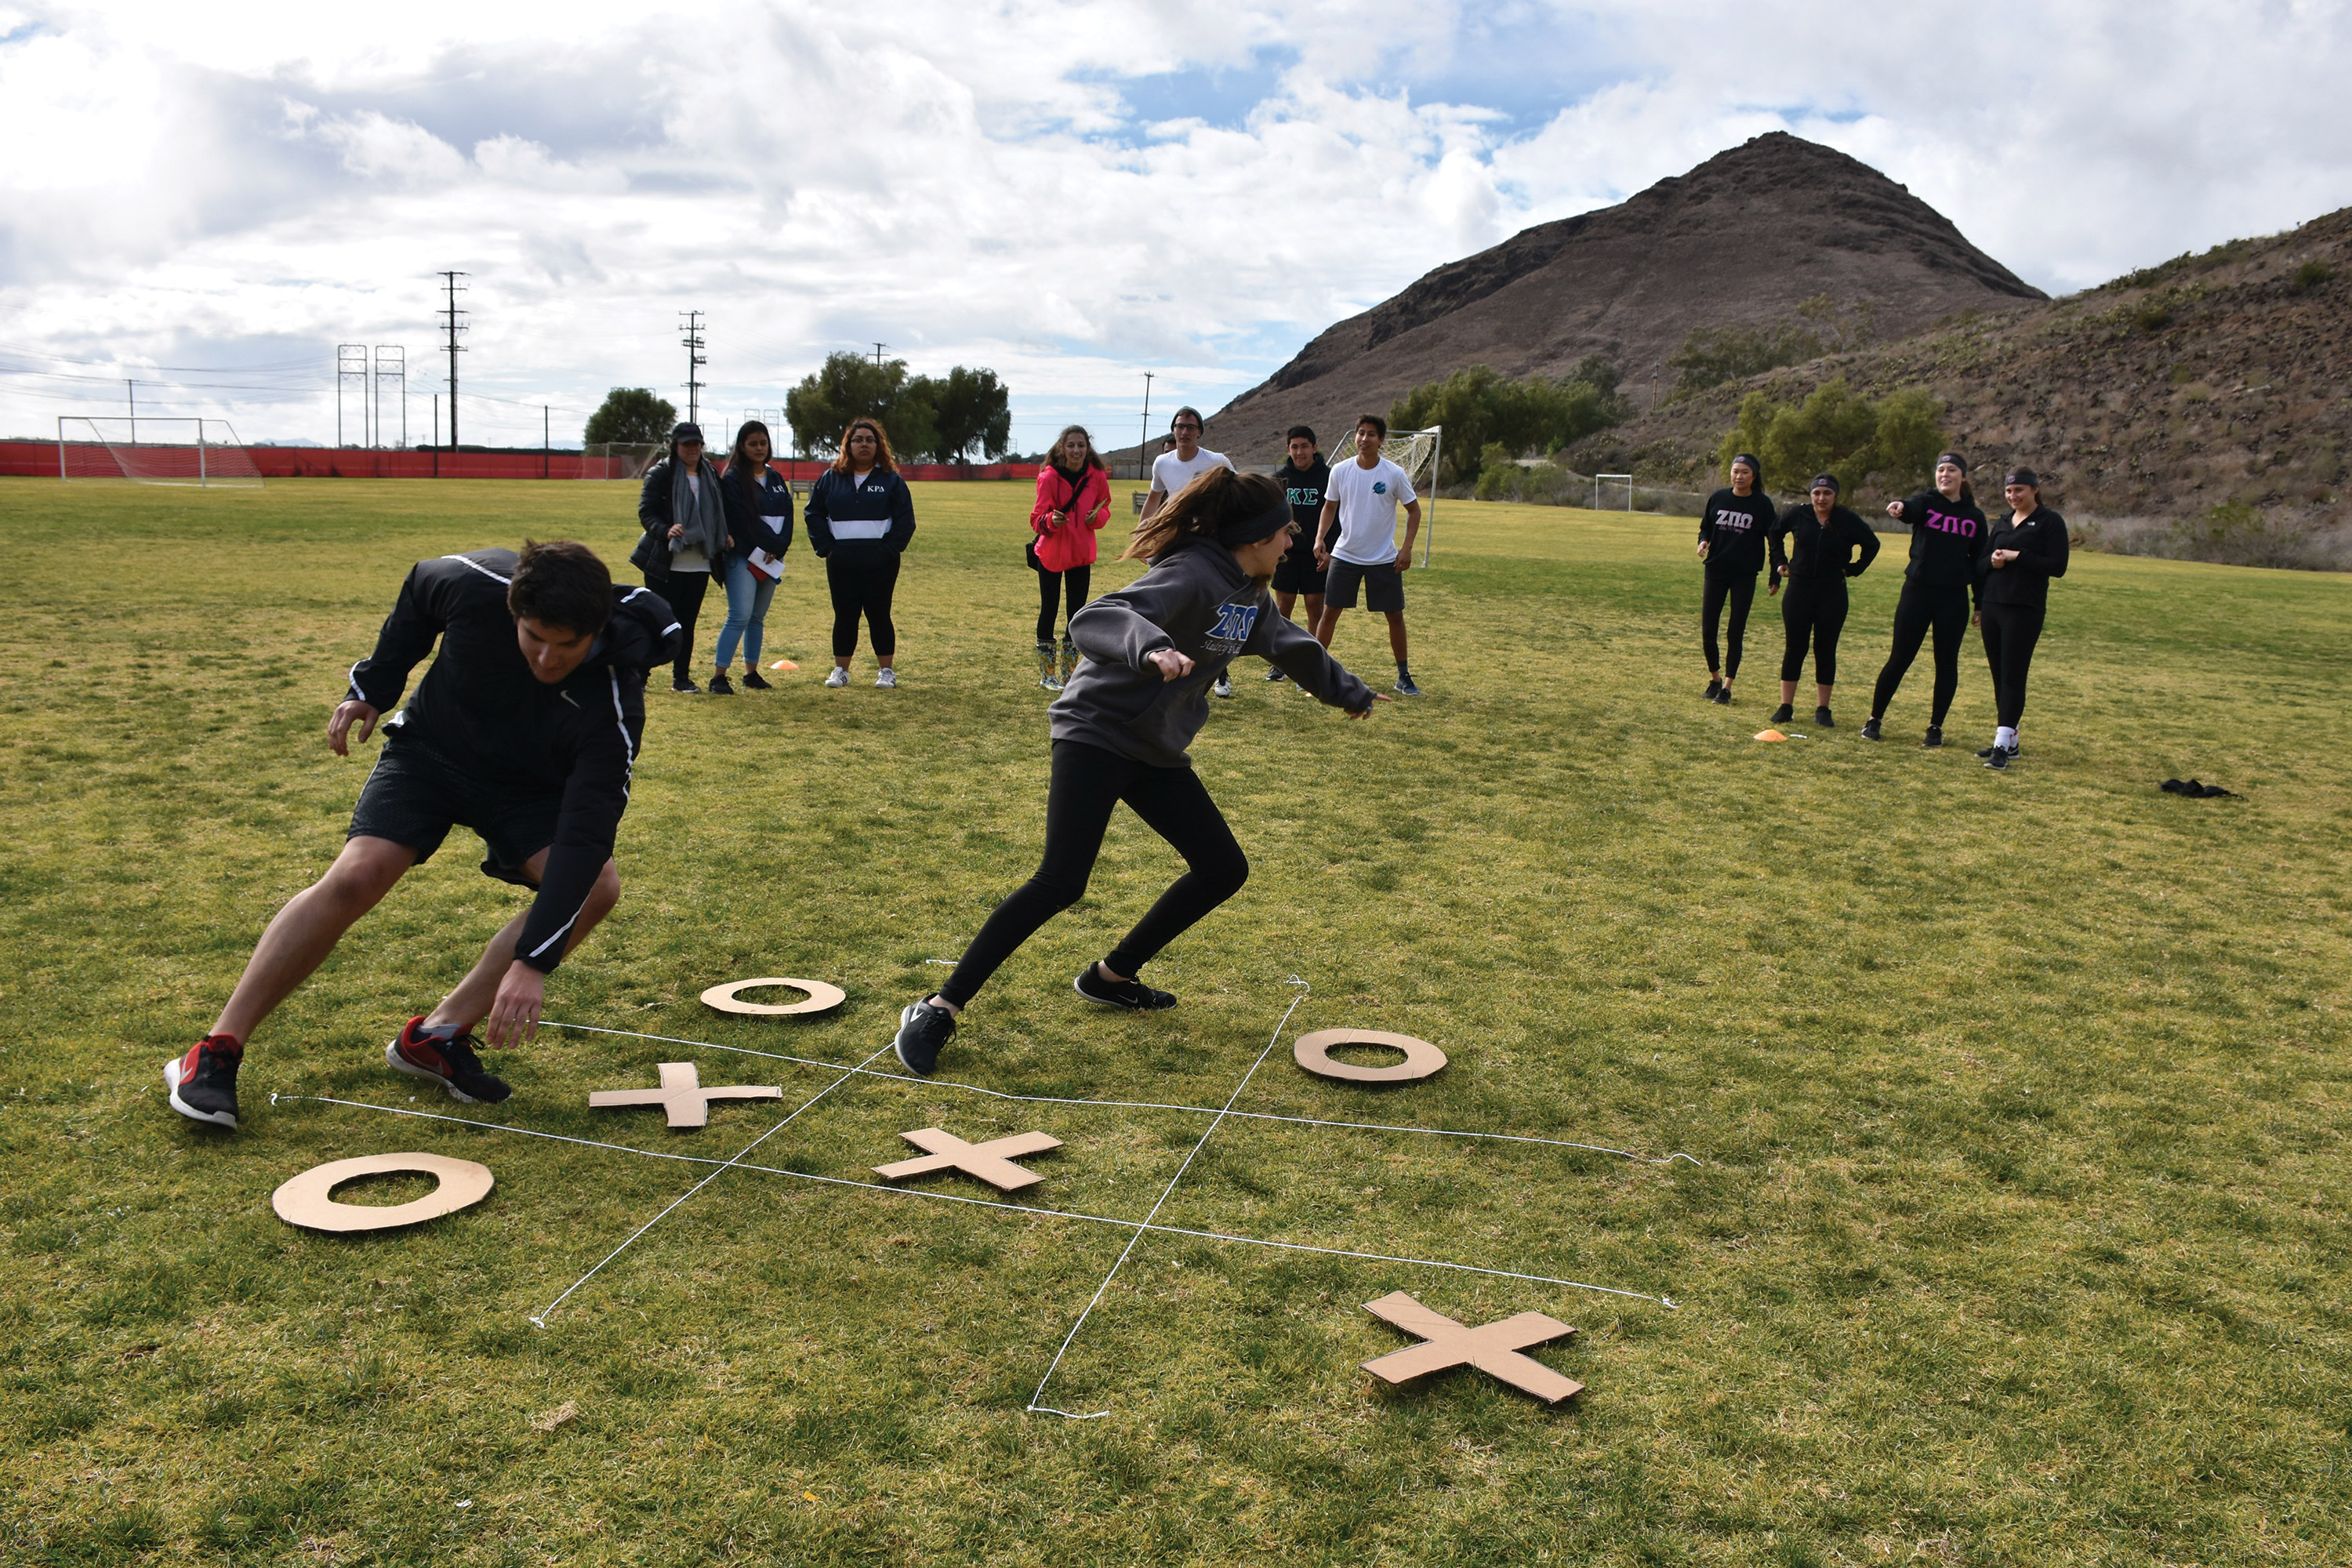 Students race to complete a tic-tac-toe game. Tic-tac-toe was one of many games being played during Kappa Rho Delta's Relay for Relay event to raise money for charity. Photo credit to Sarina Galindo.